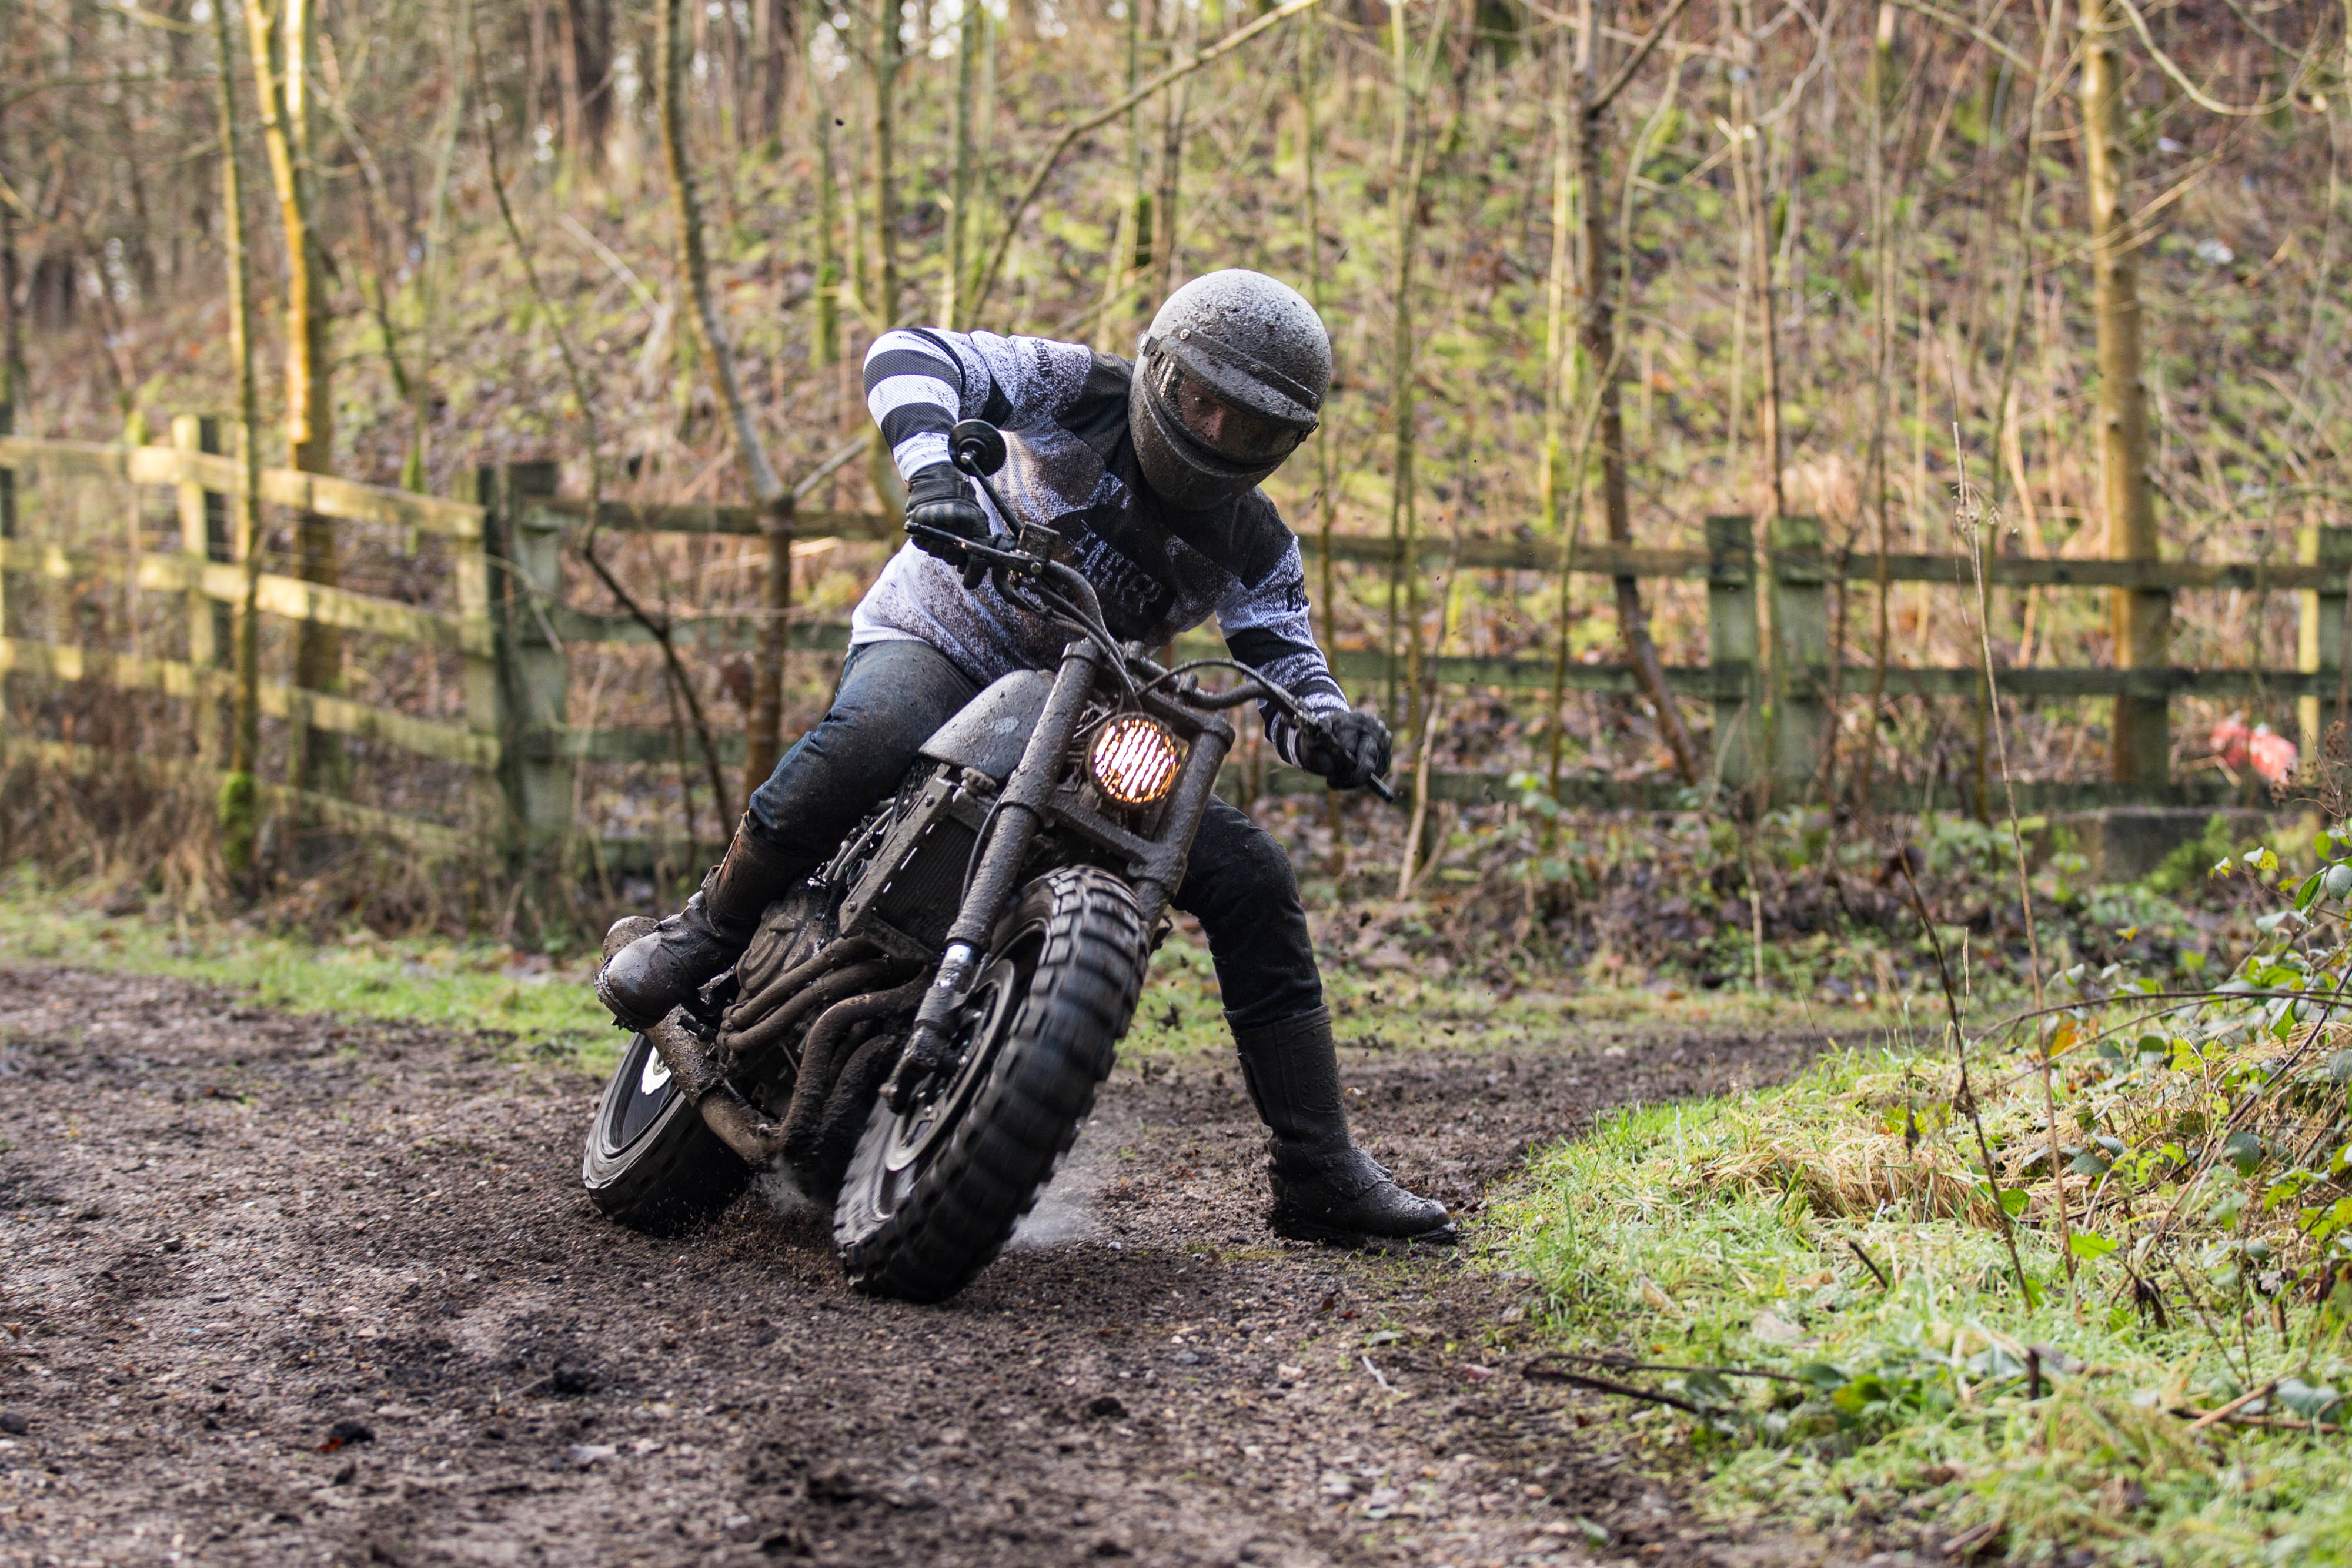 Rough crafts XSR700 scrambler in action